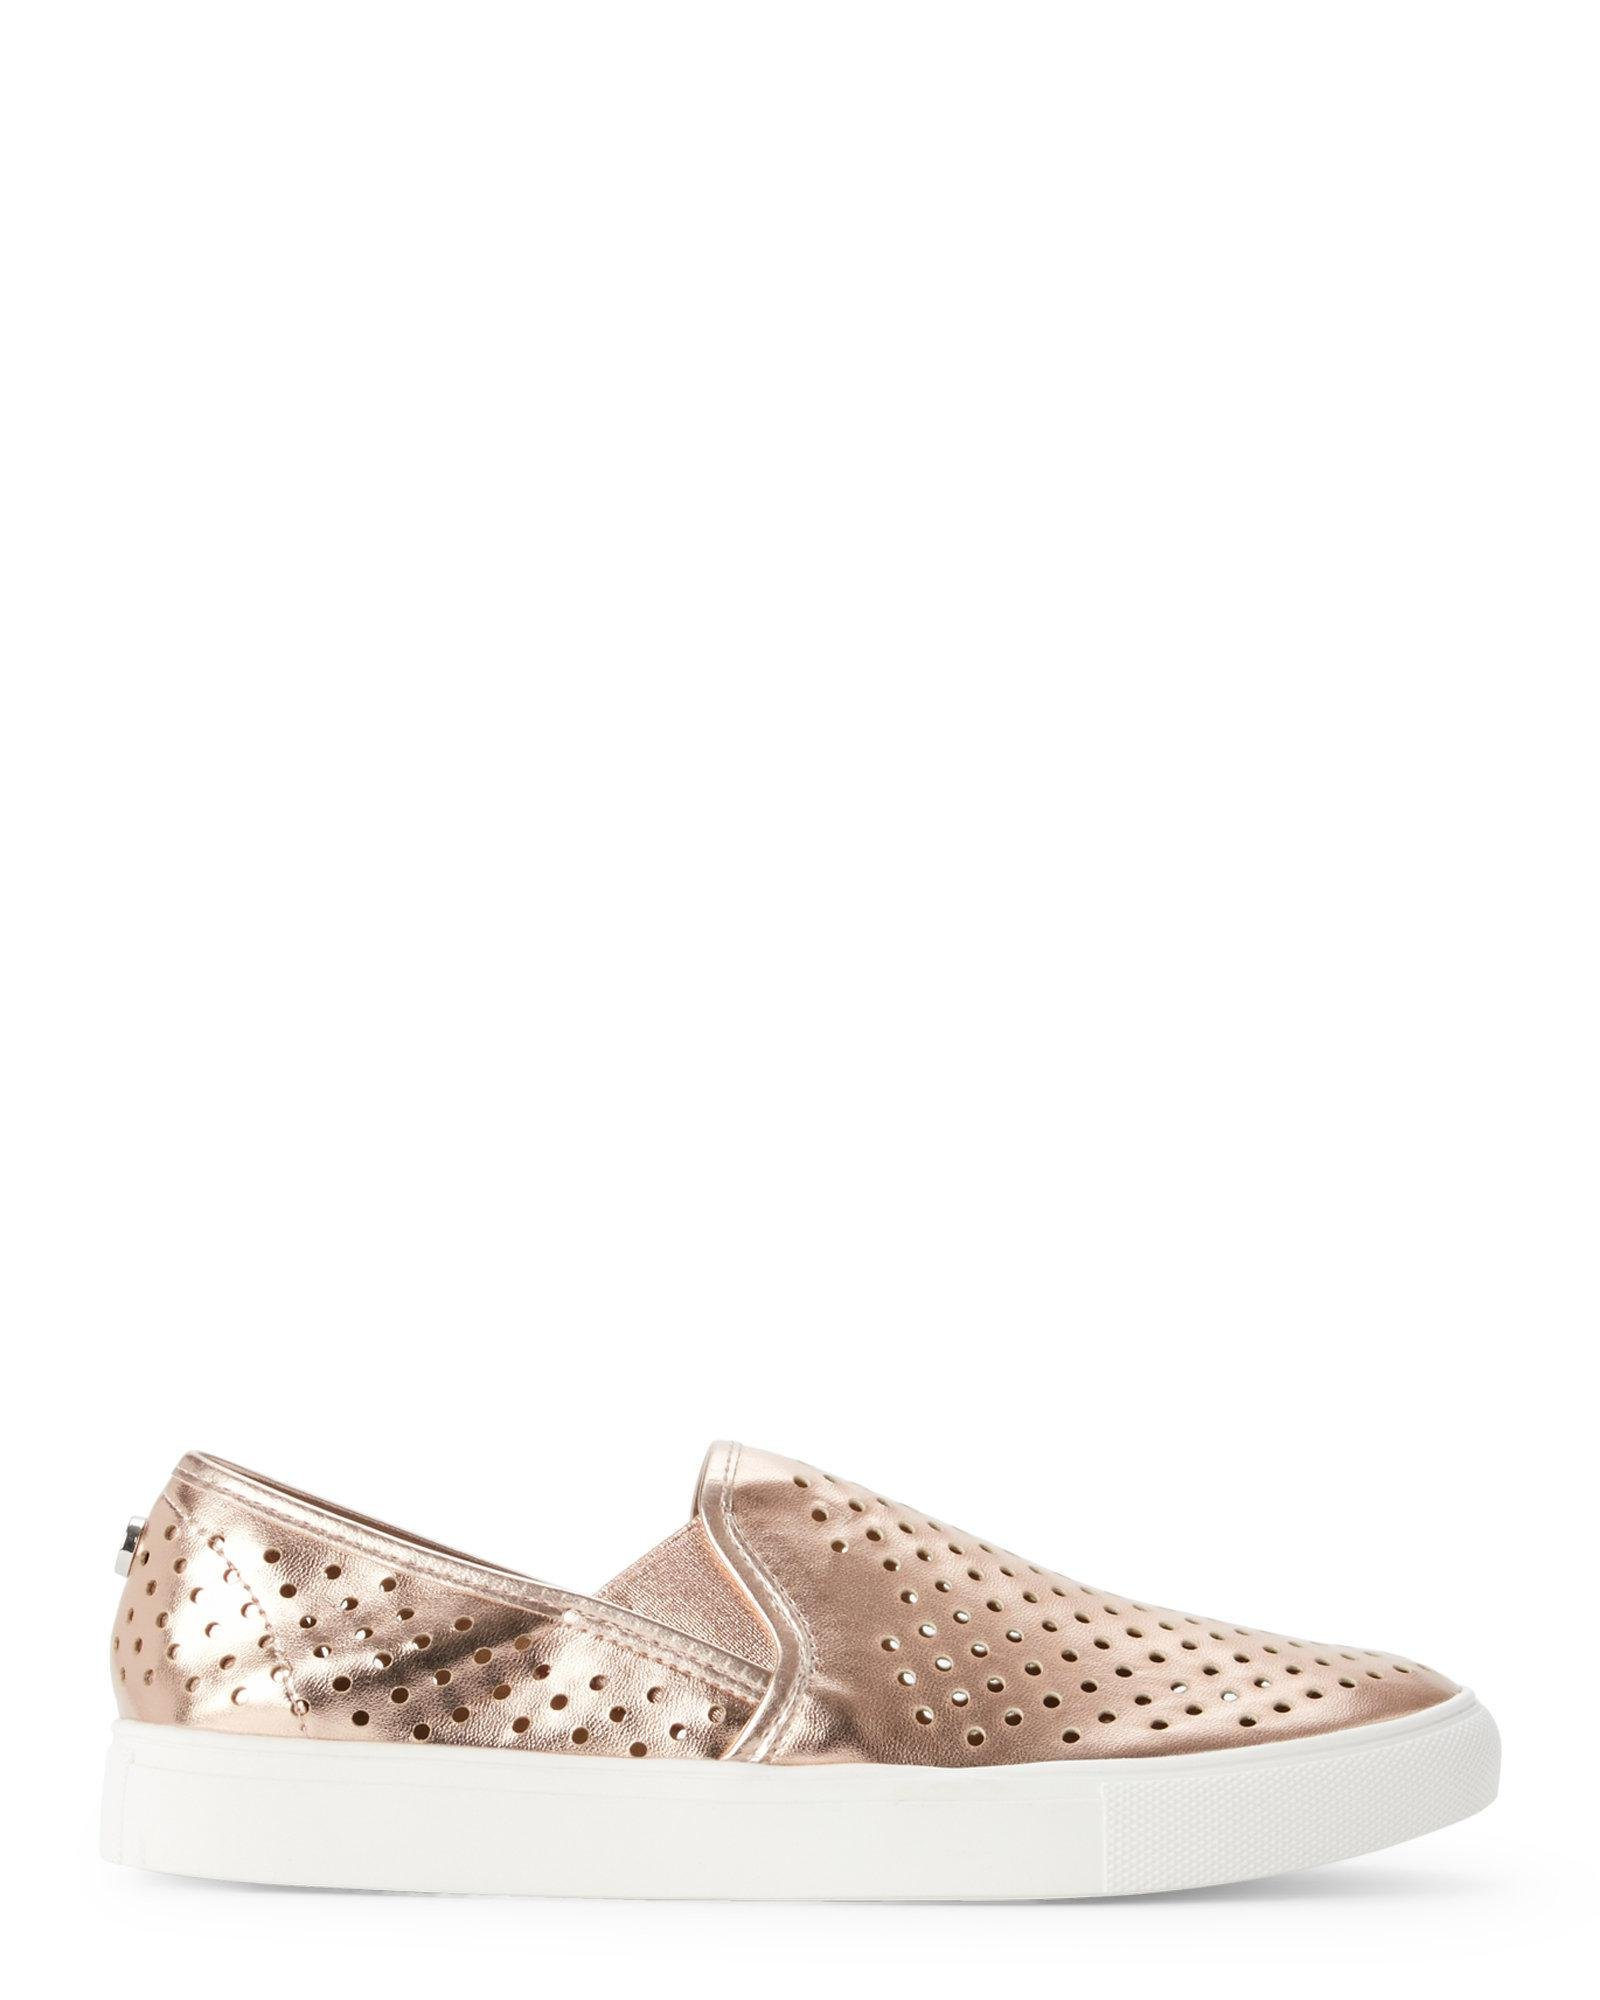 3eb027e32f4 Lyst - Steve Madden Rose Gold Owen Perforated Slip On Sneakers in Pink